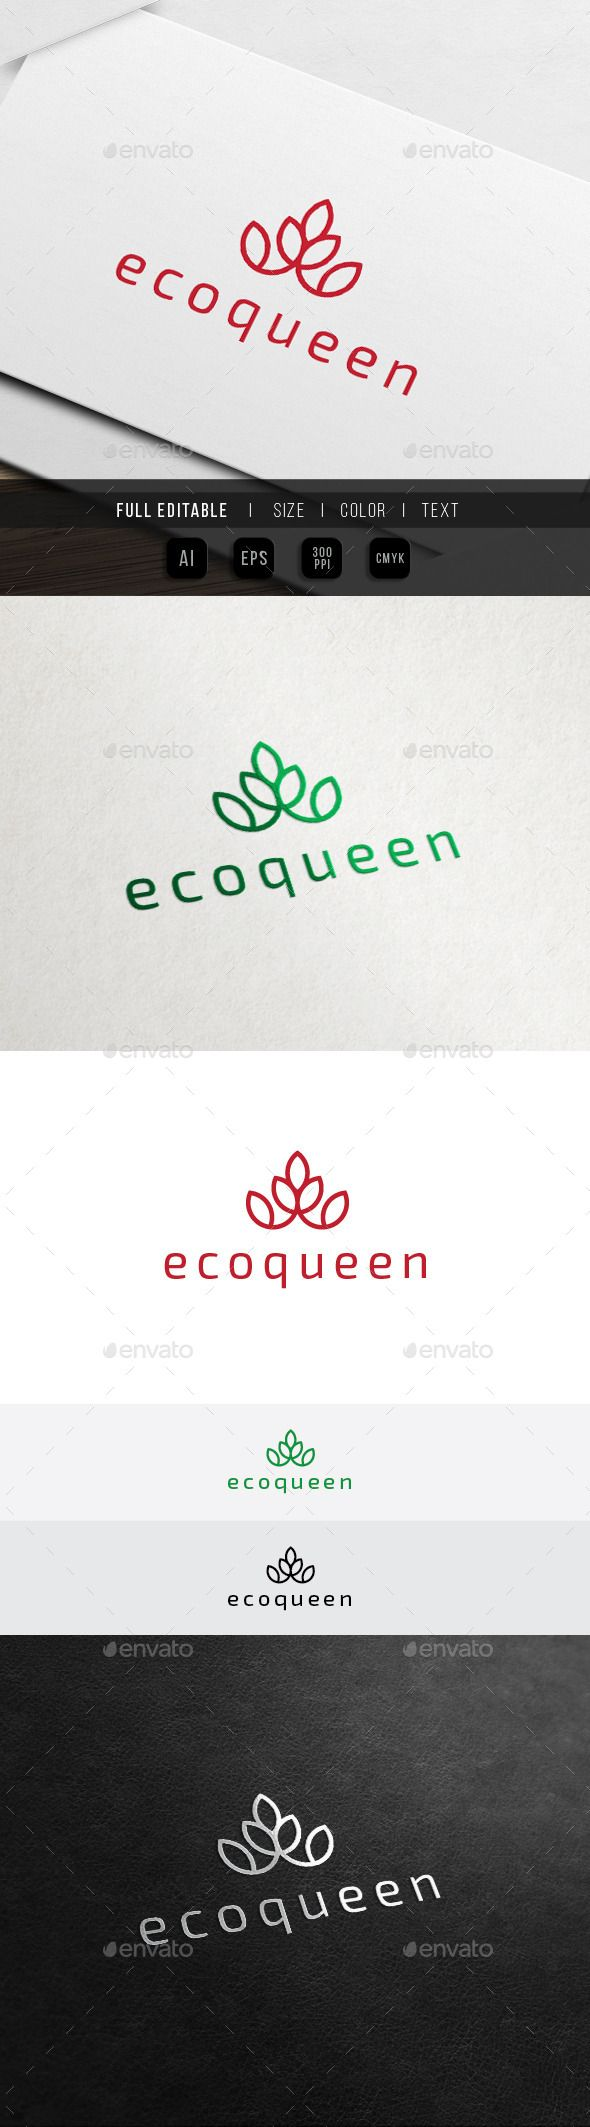 Eco Crown Hotel - Green Spa Resort Logo - Nature Logo Templates